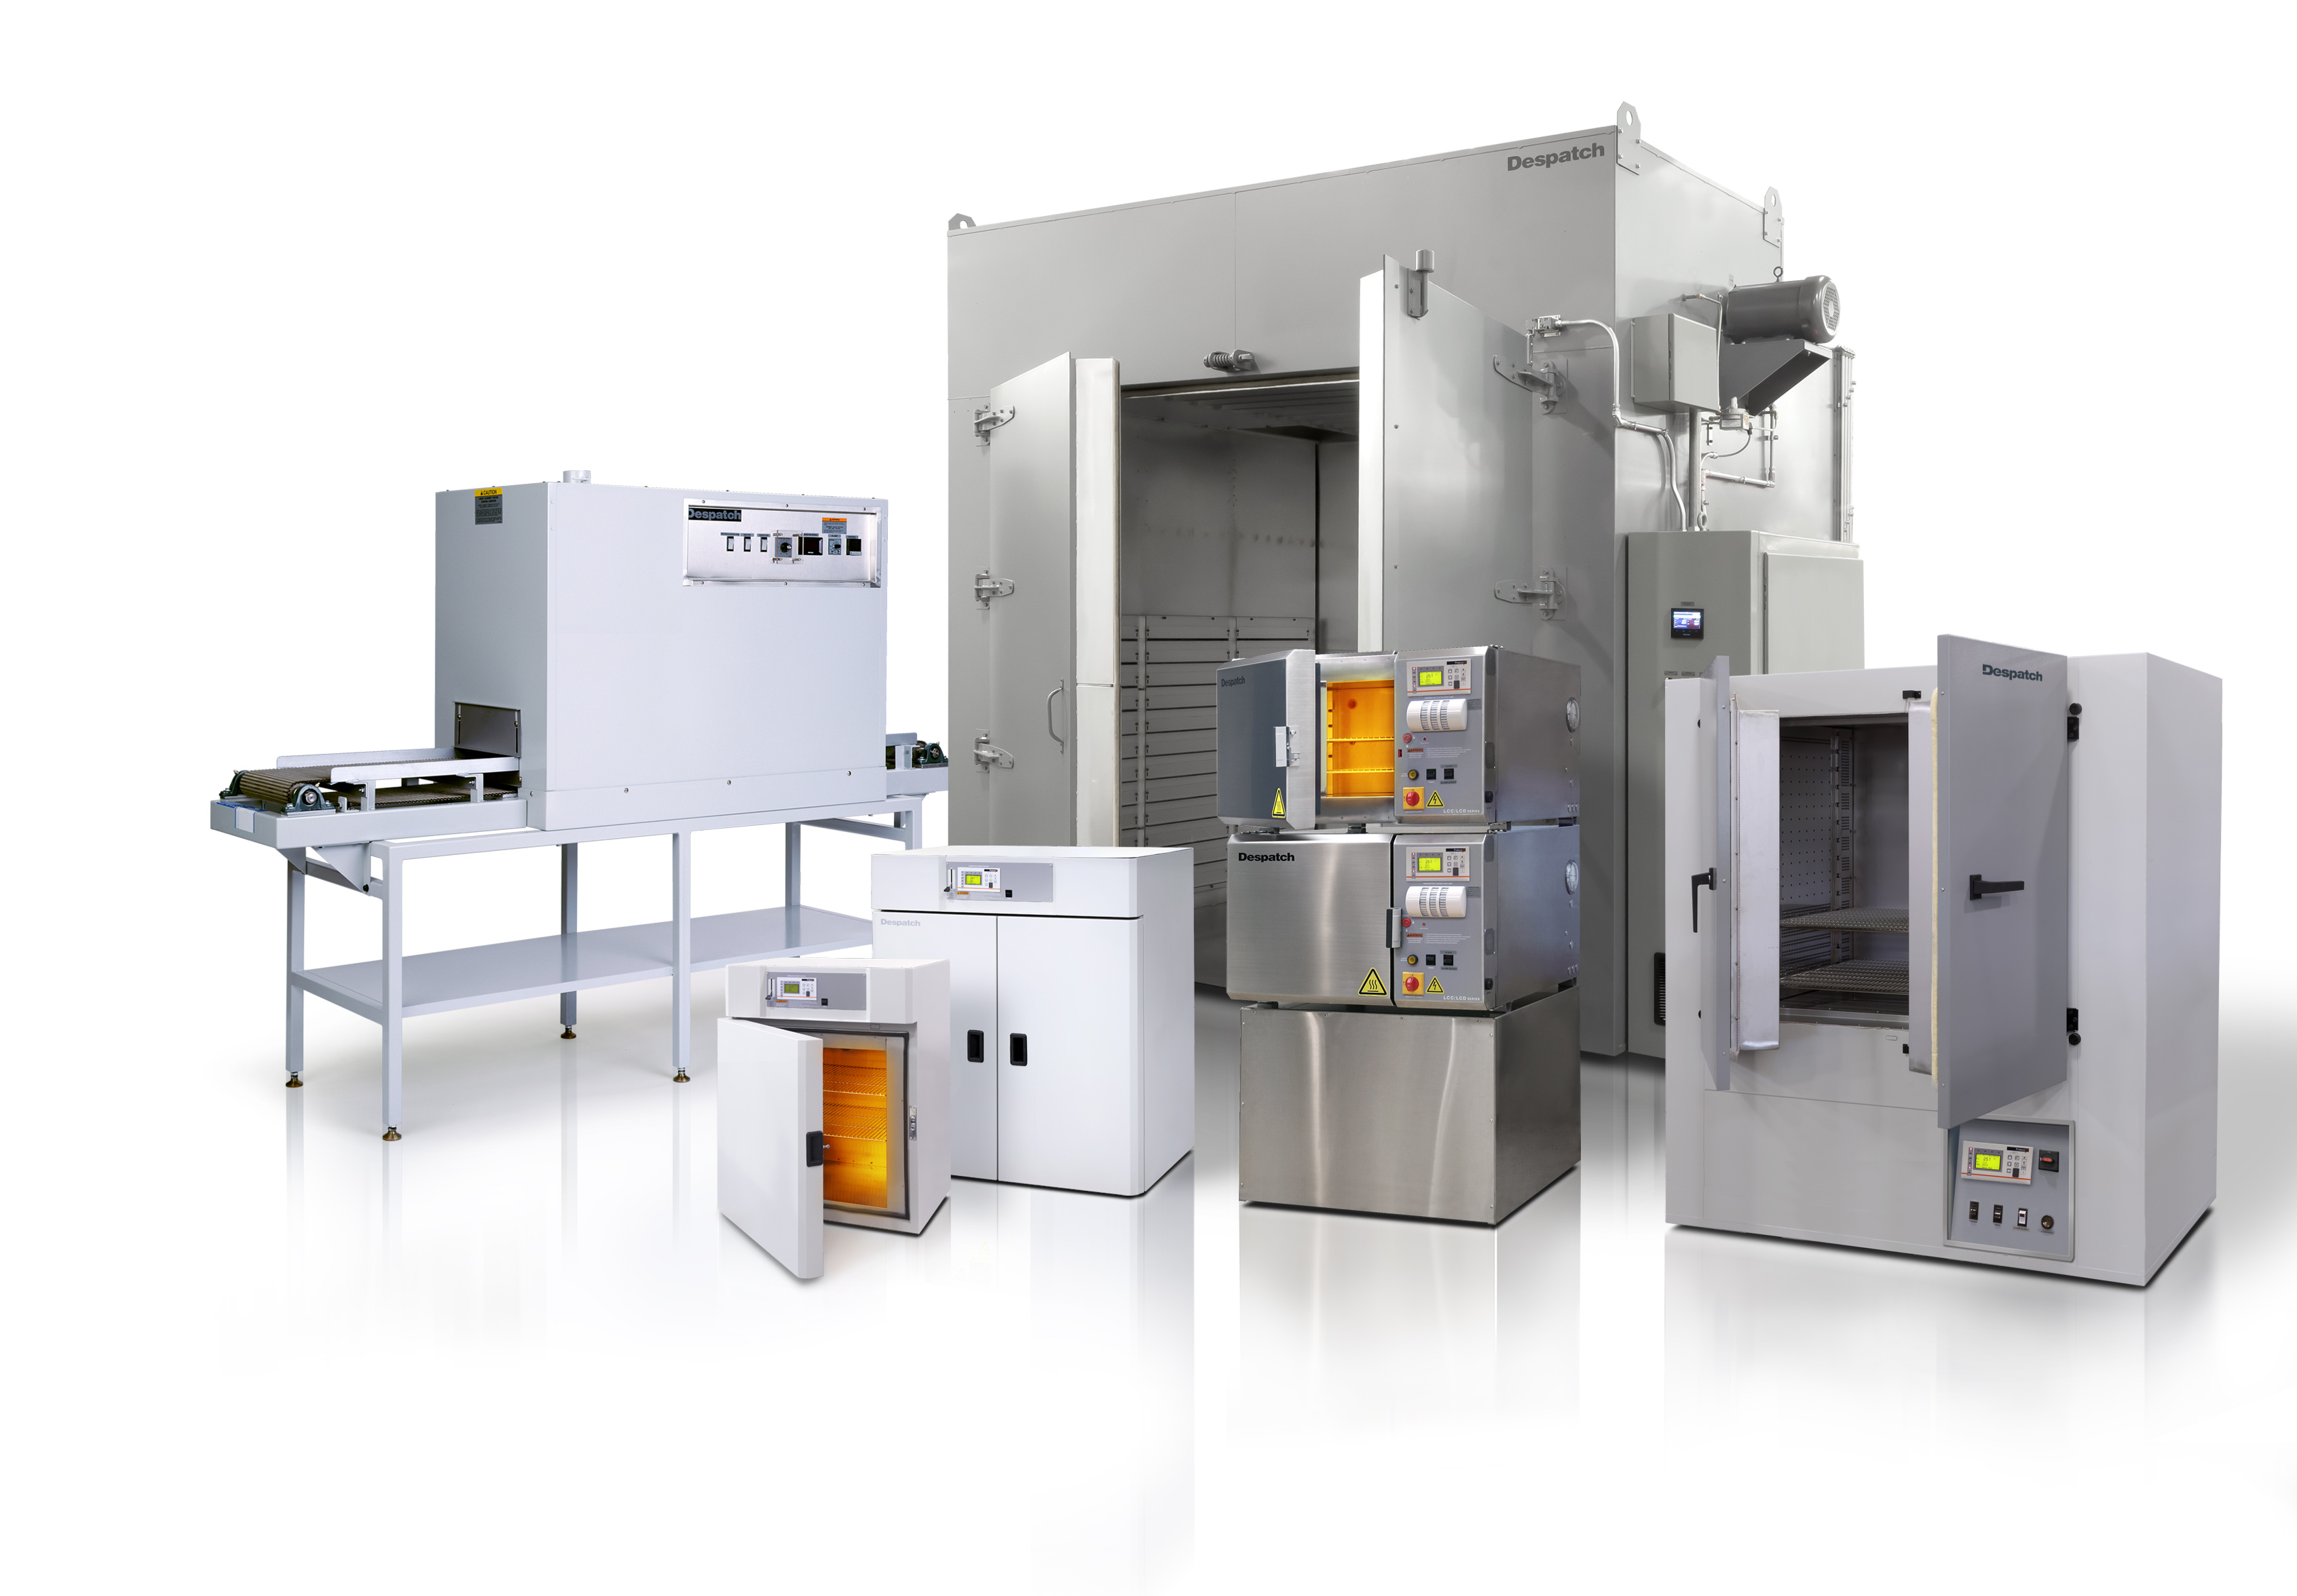 A Guide To Selecting The Right Industrial Oven For Your Processing Application